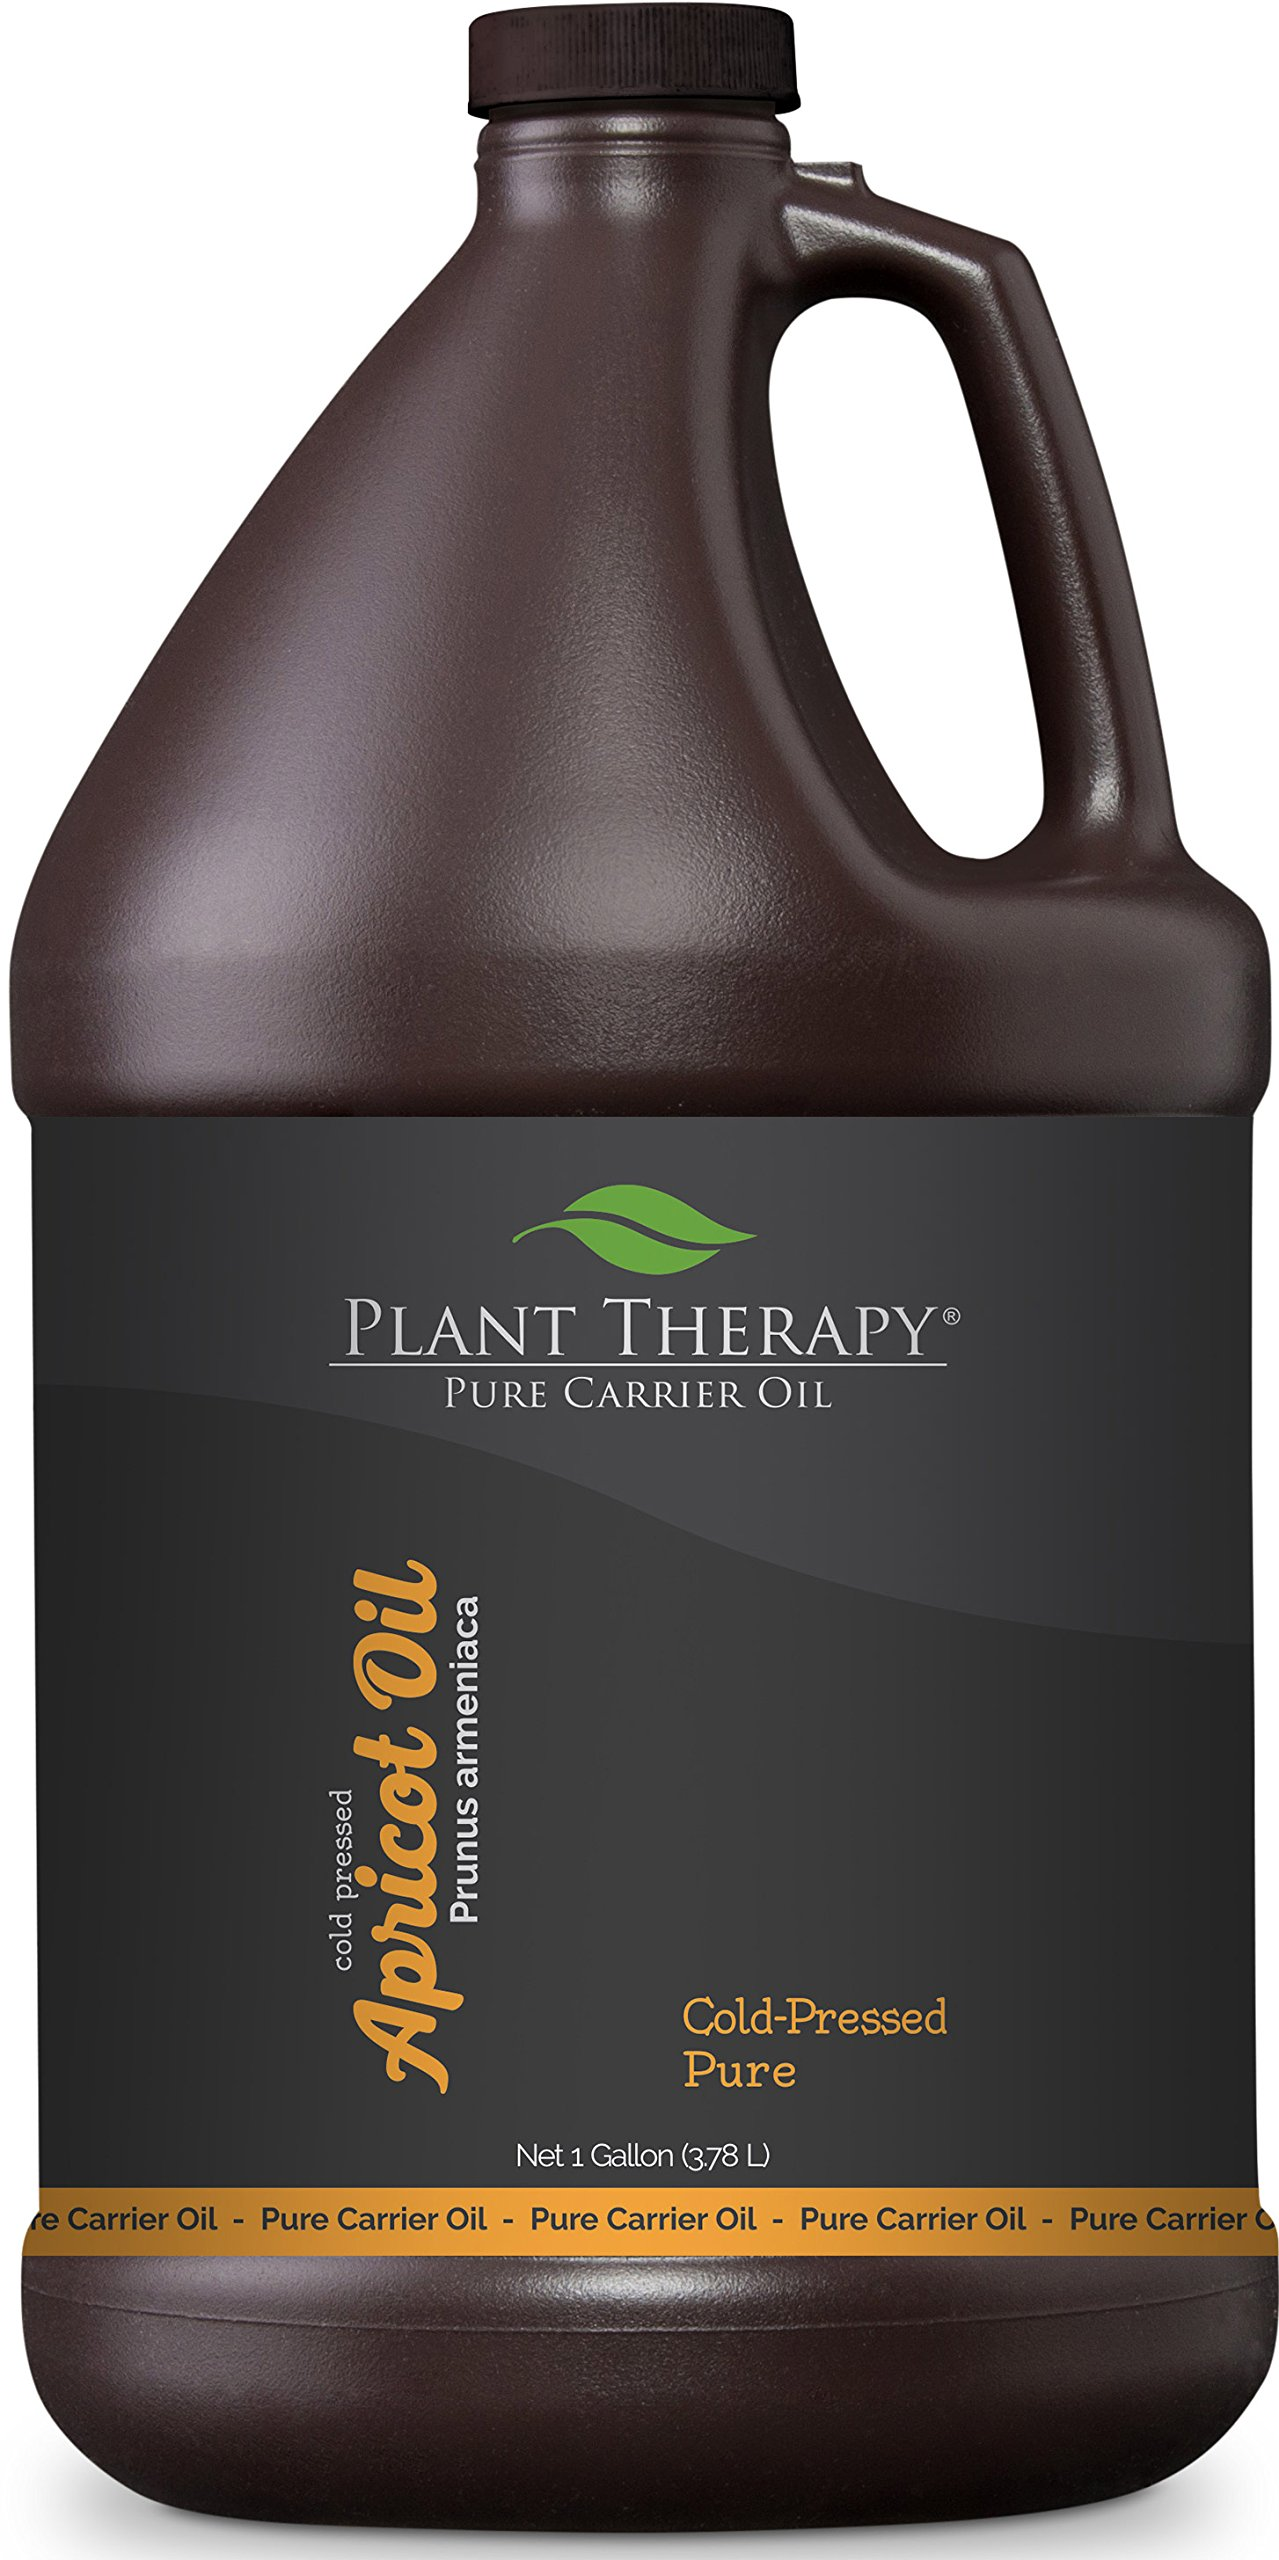 Plant Therapy Apricot Kernel Carrier Oil. A Base Oil for Aromatherapy, Essential Oil or Massage Use. 1 gal.